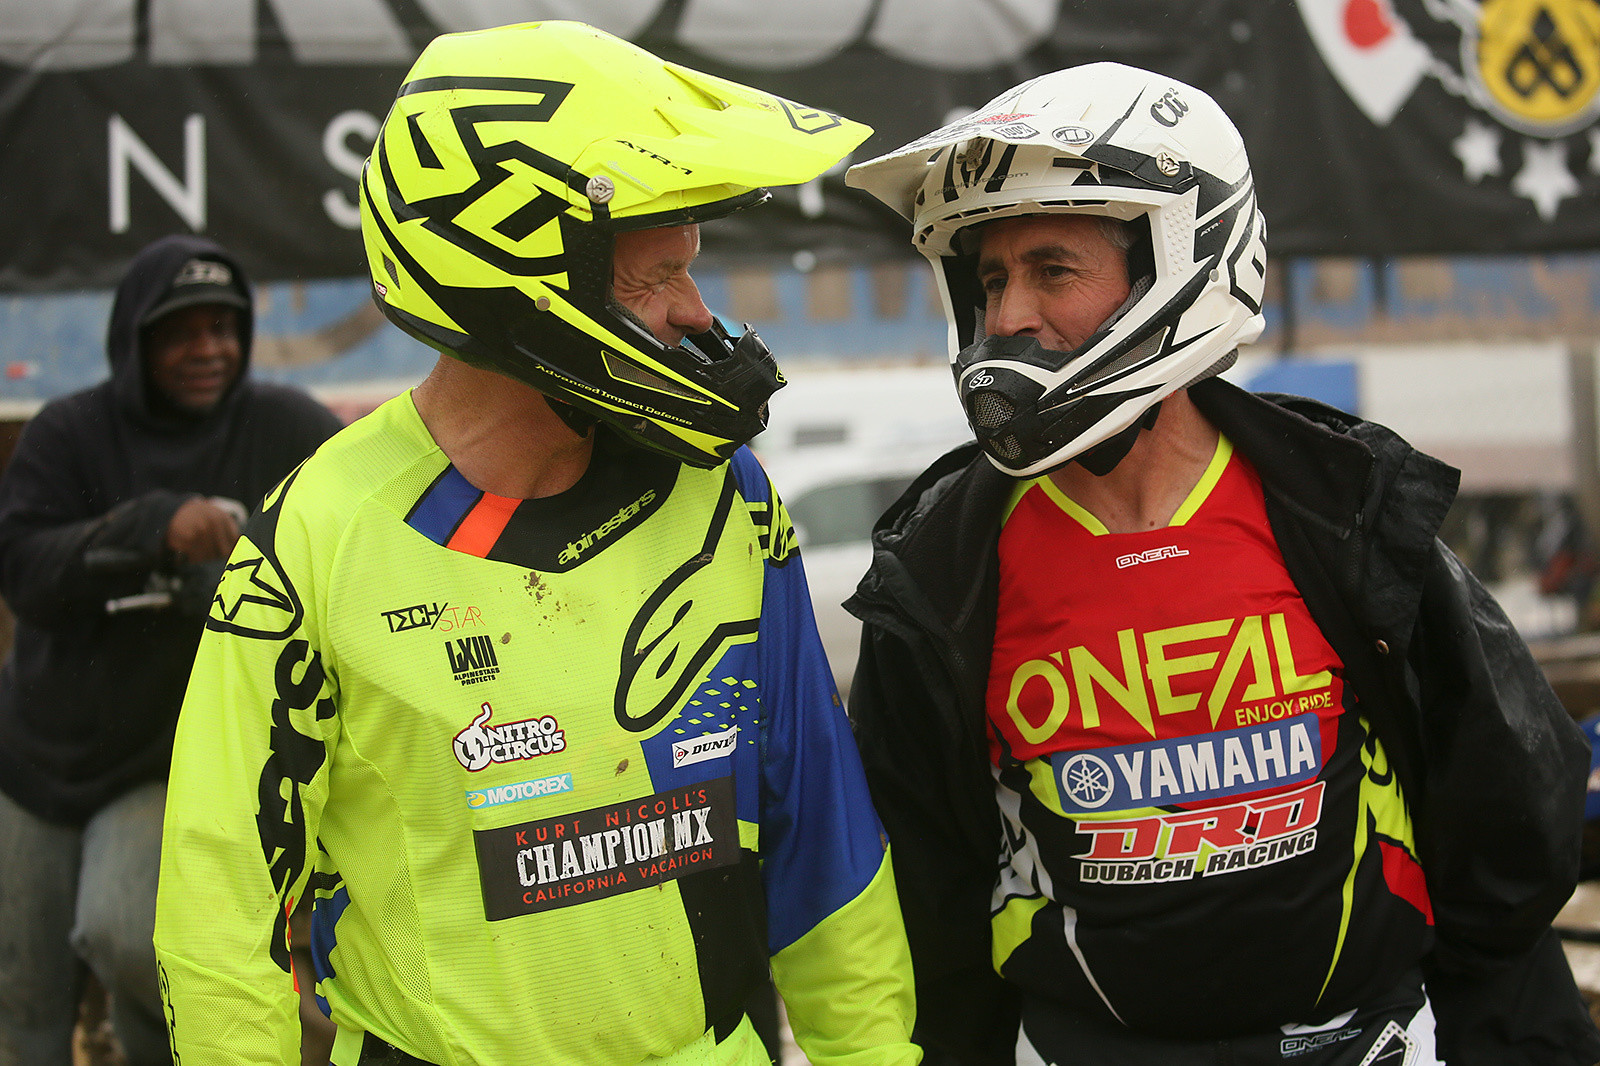 Doug has had some rivals over the years at the Vet Worlds. Most recently? He and Kurt Nichol have been battling.